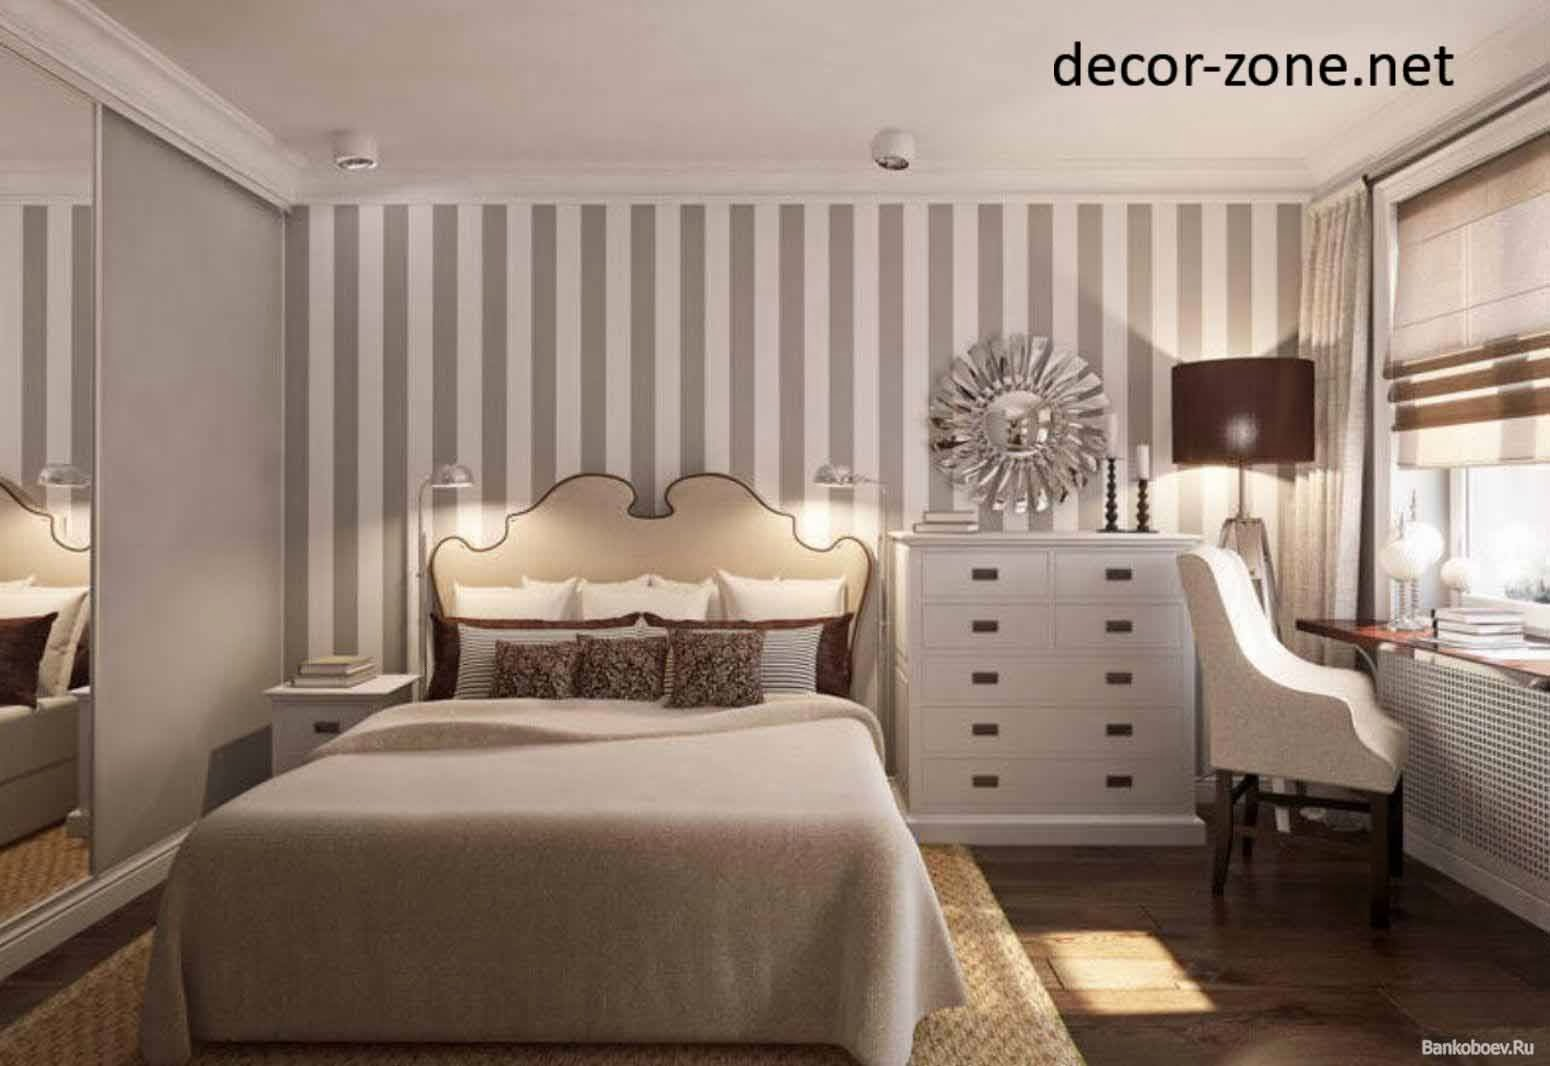 Tapeten Schlafzimmer Wall Decor Ideas For The Master Bedroom